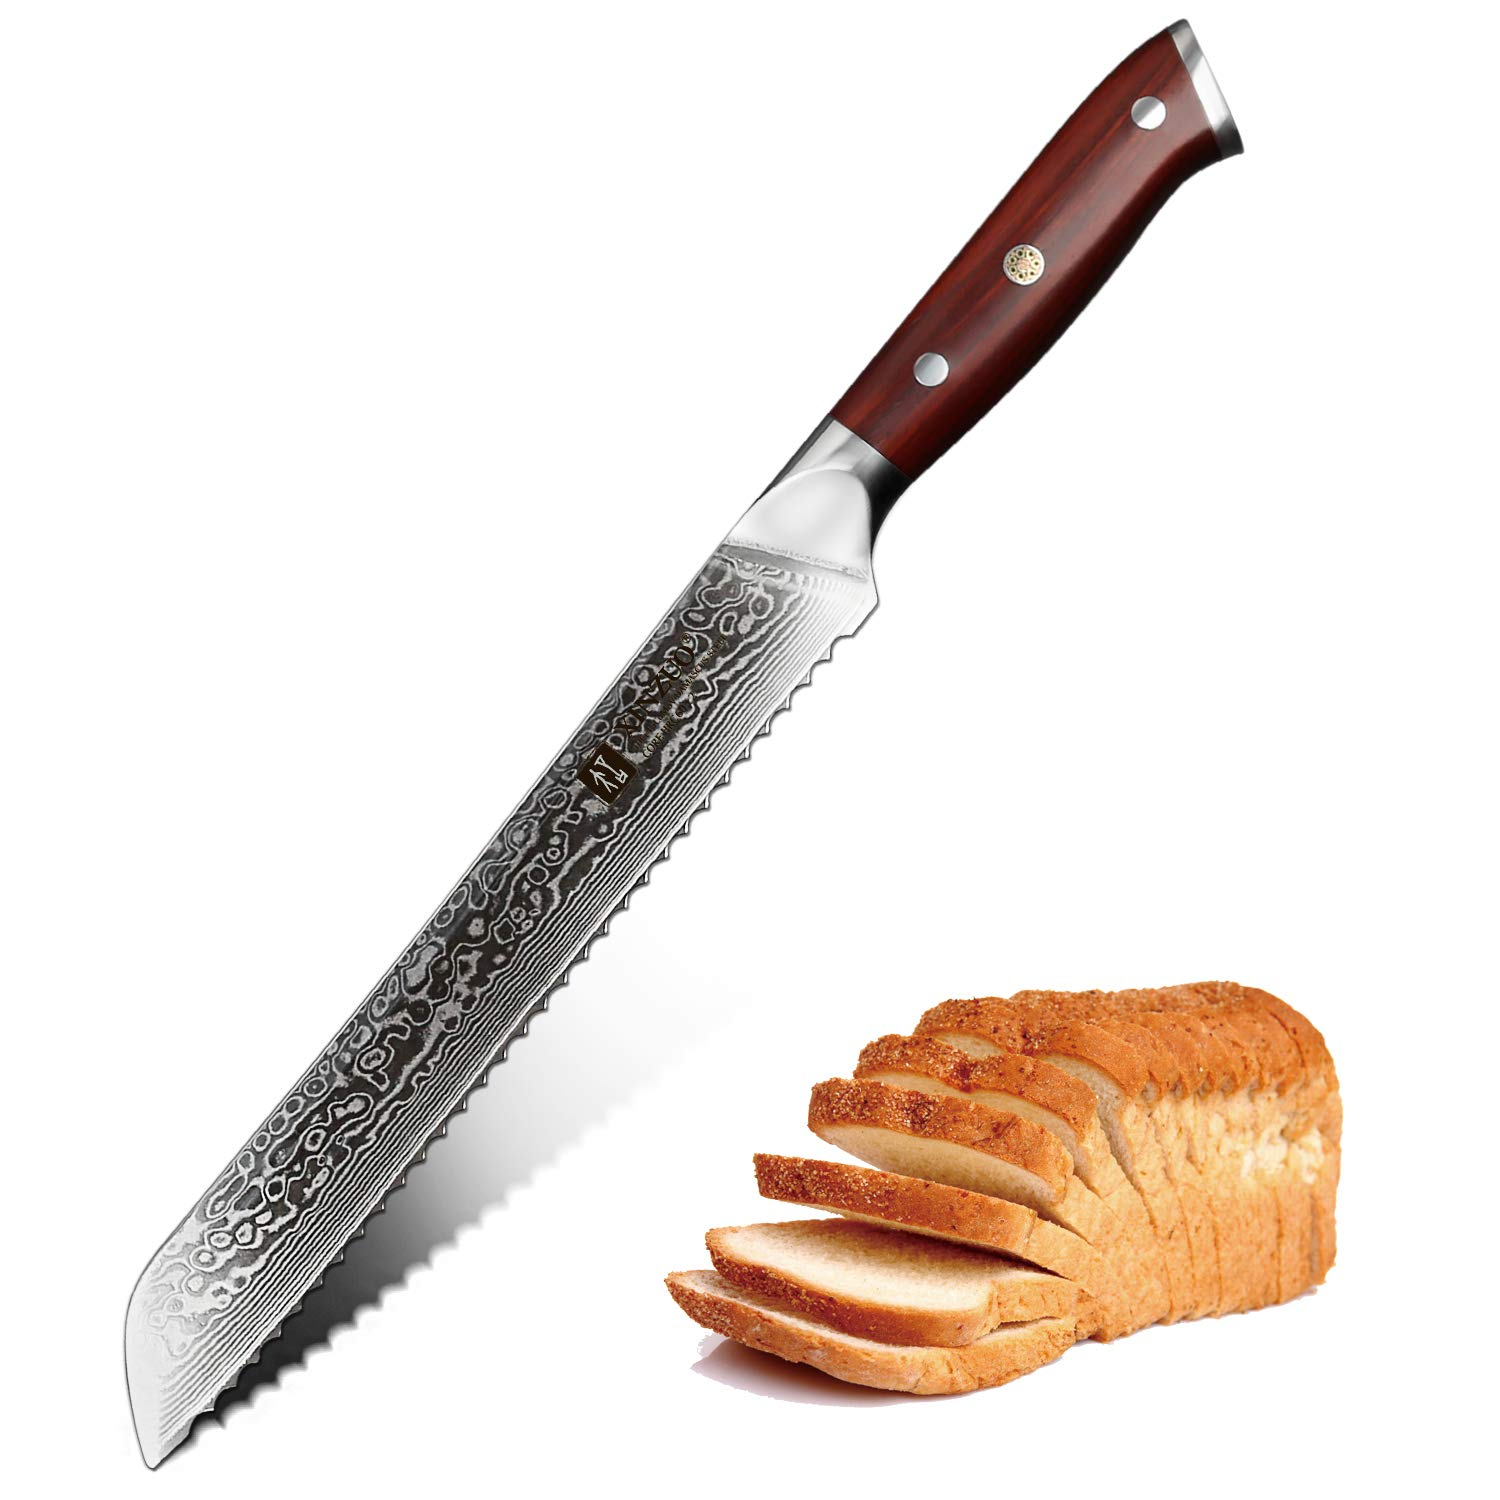 XINZUO 9 Inch Bread Knife High Carbon 67 Layer Japanese VG10 Damascus Super Steel Kitchen Knife Professional Chef's Cake Knife with Rosewood Handle - Yu Series